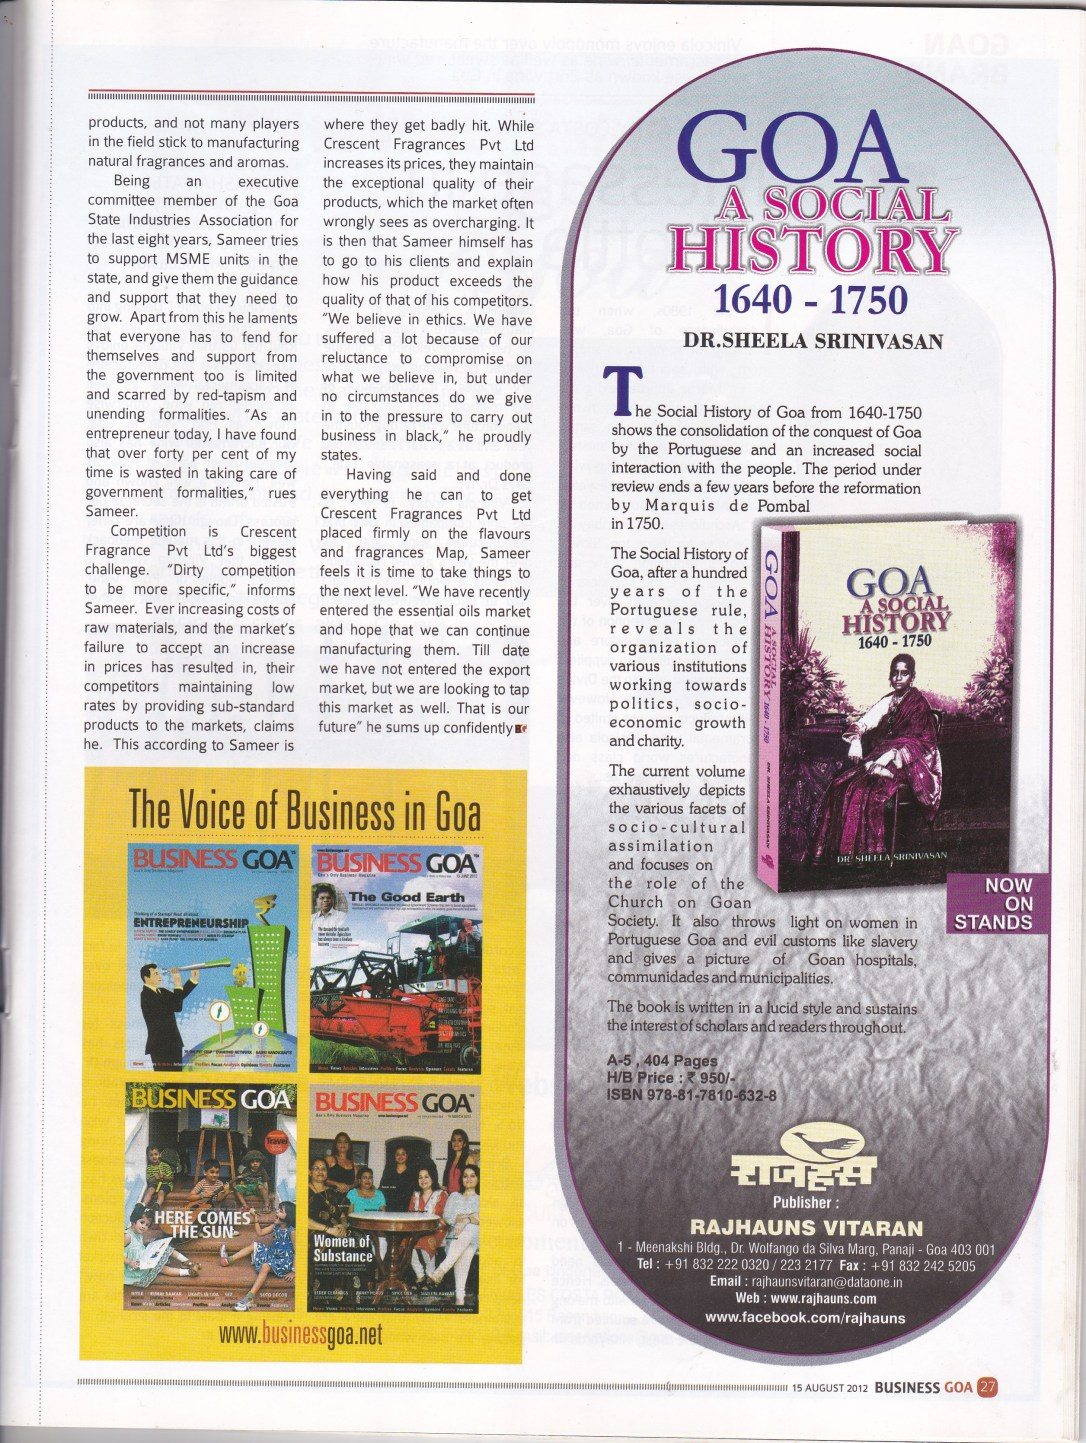 Business Goa Page 2